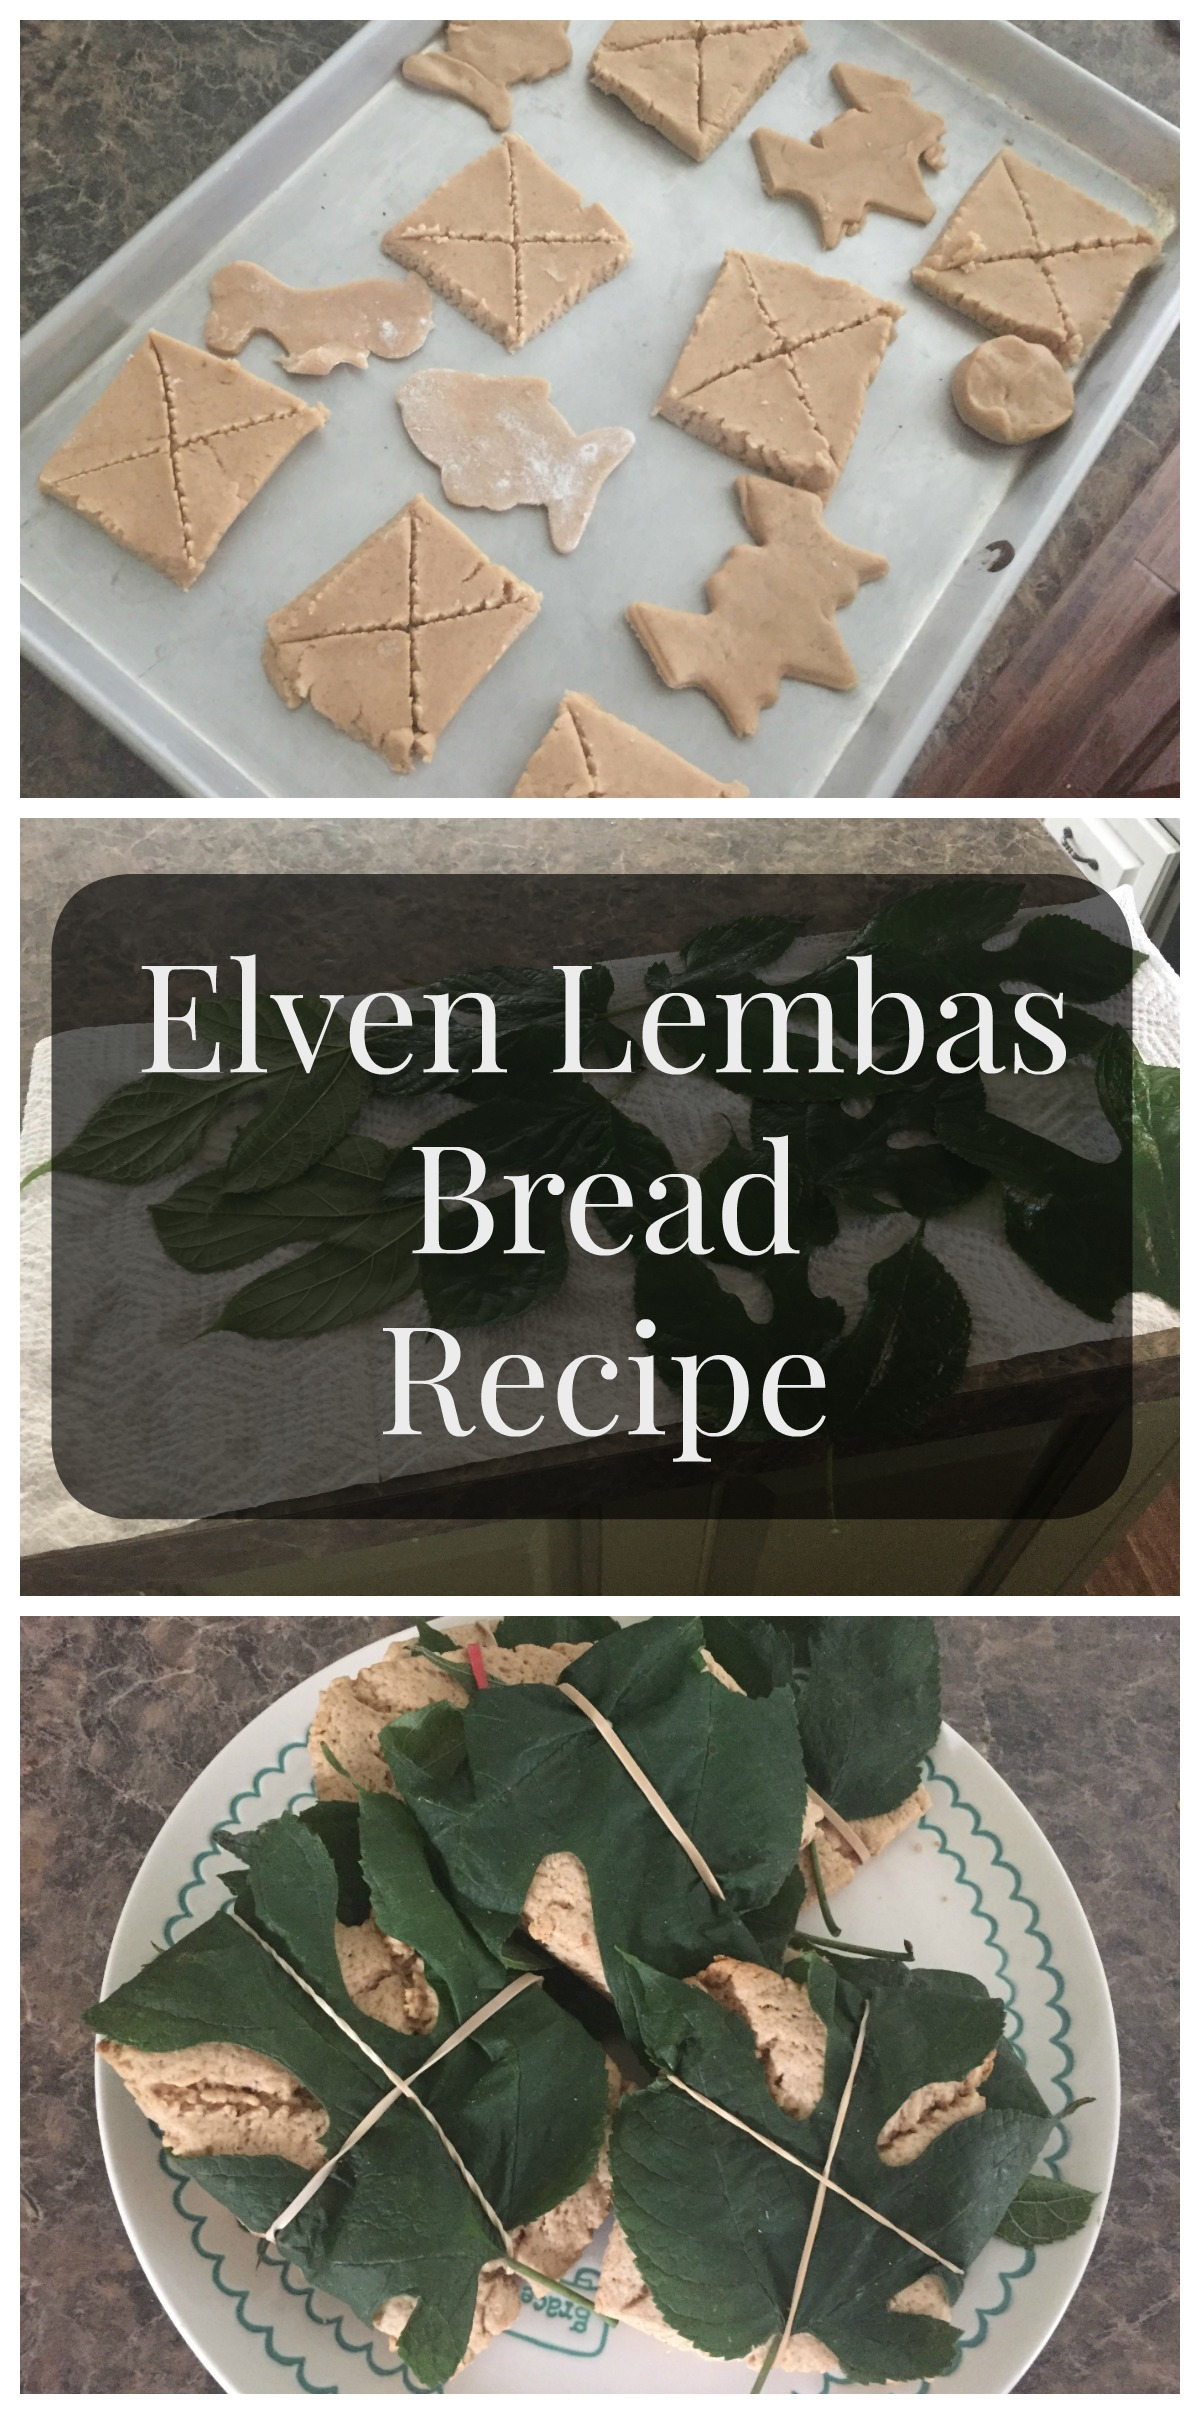 Elven Lembas Bread Recipe